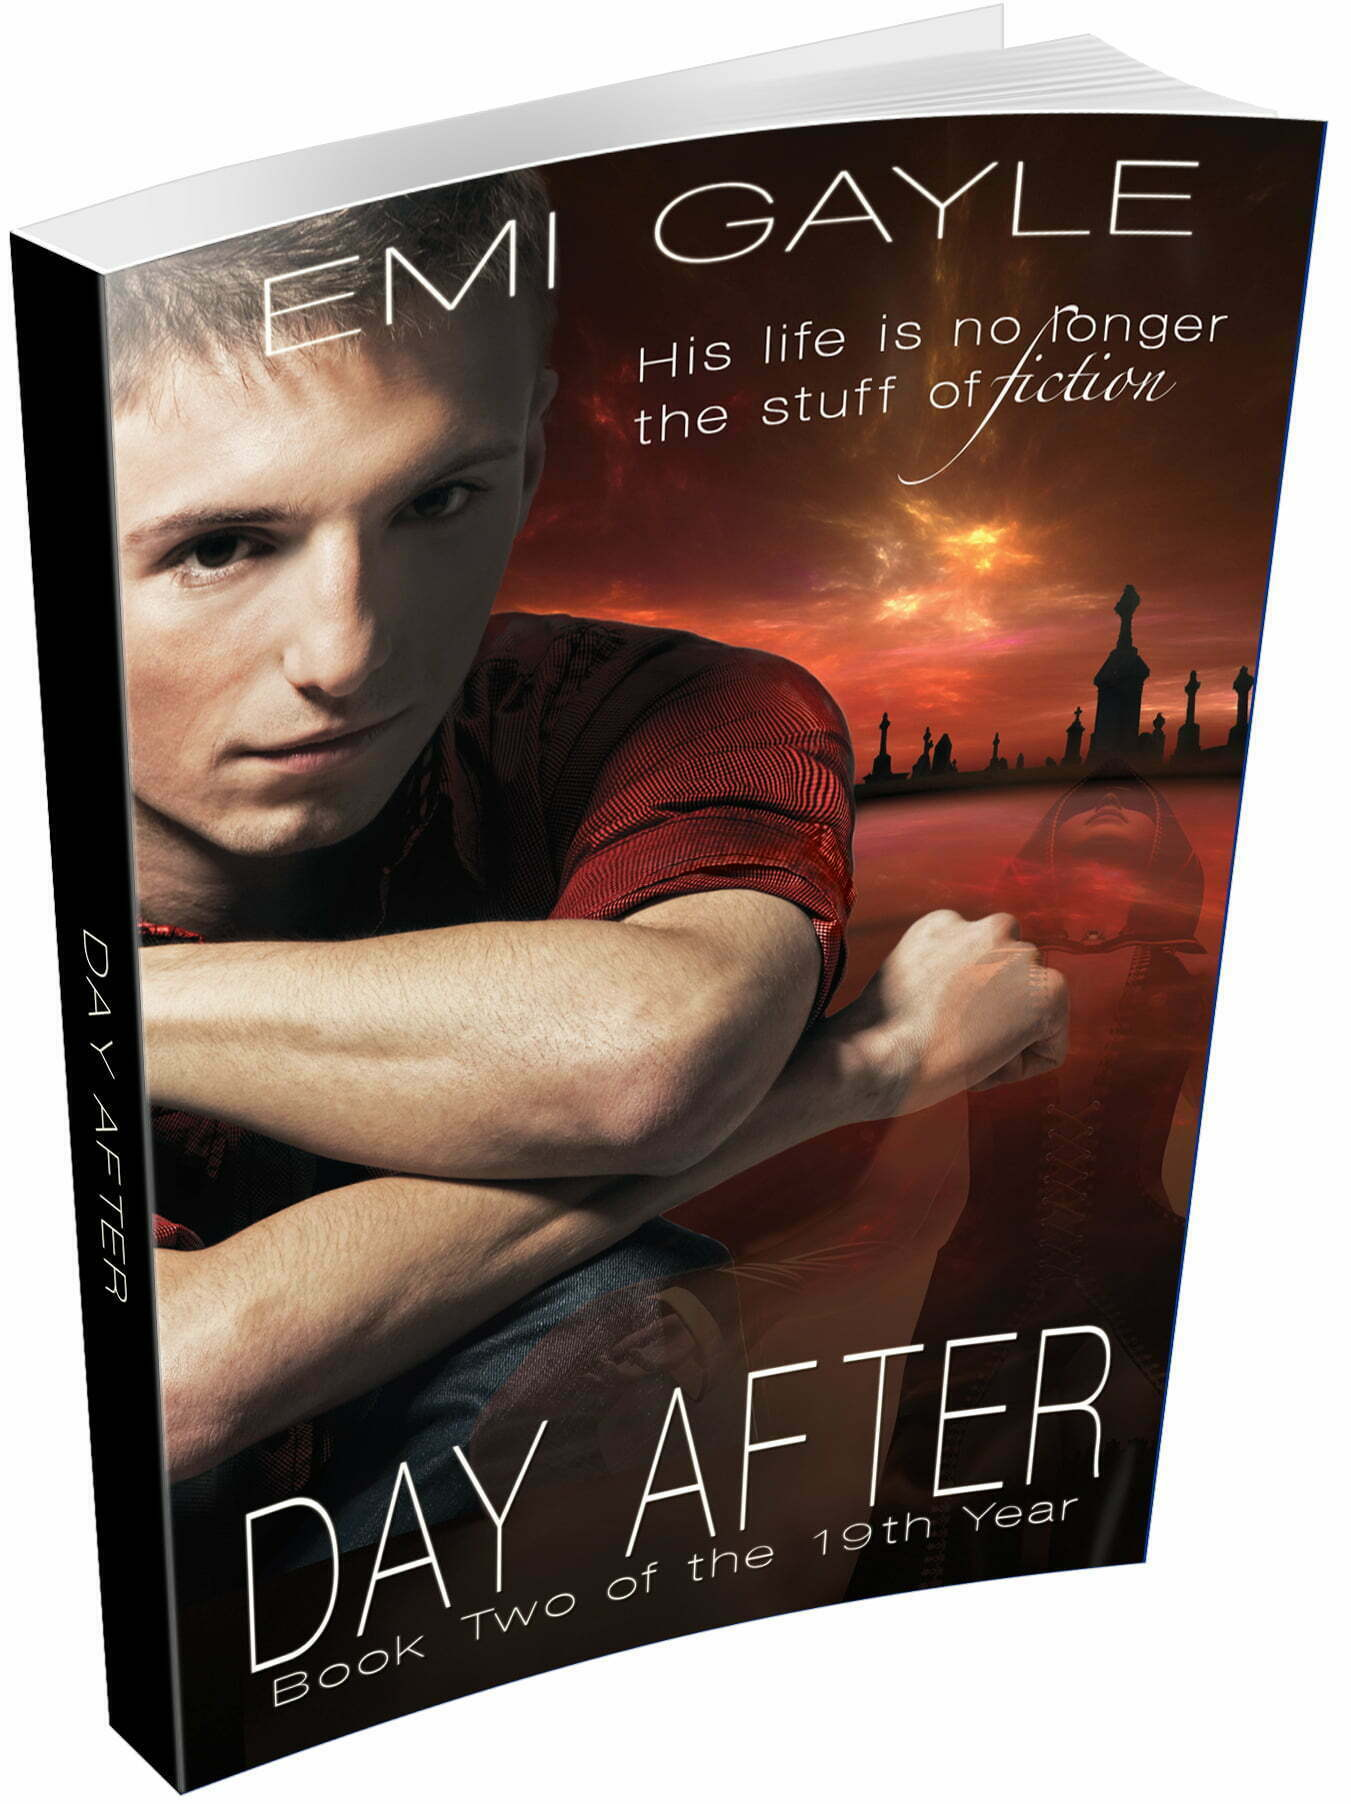 It's here! The first 500 words of Day After (Book 2 in the 19th Year) are here!